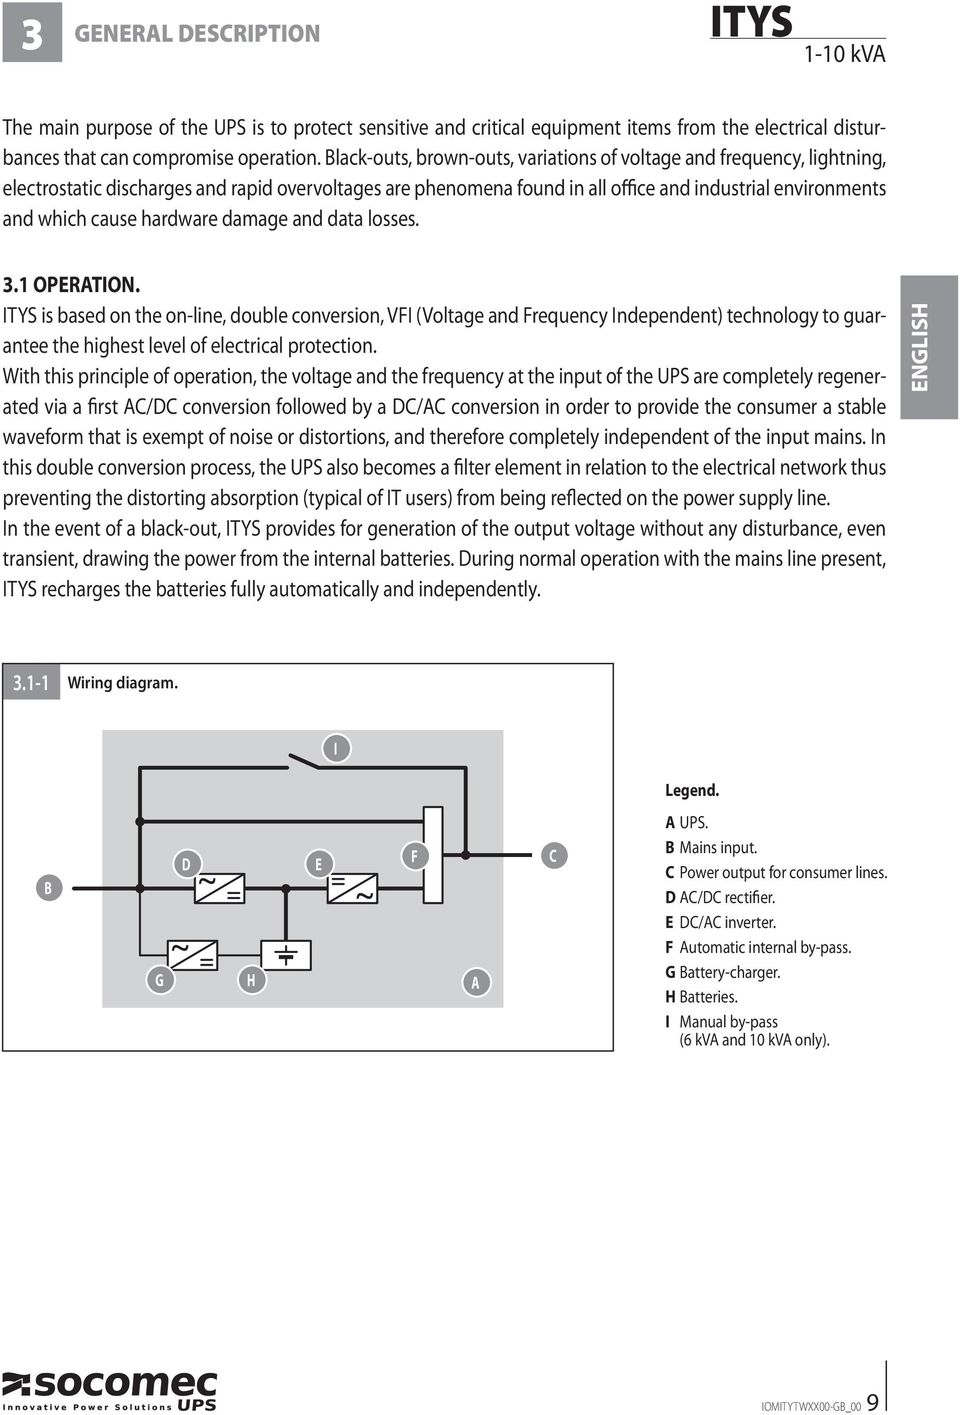 Installation And Operating Manual Itys Pdf Dc To Ac Conversion Circuit Diagram Free Download Wiring Hardware Damage Data Losses 31 Operation Is Based On The Line